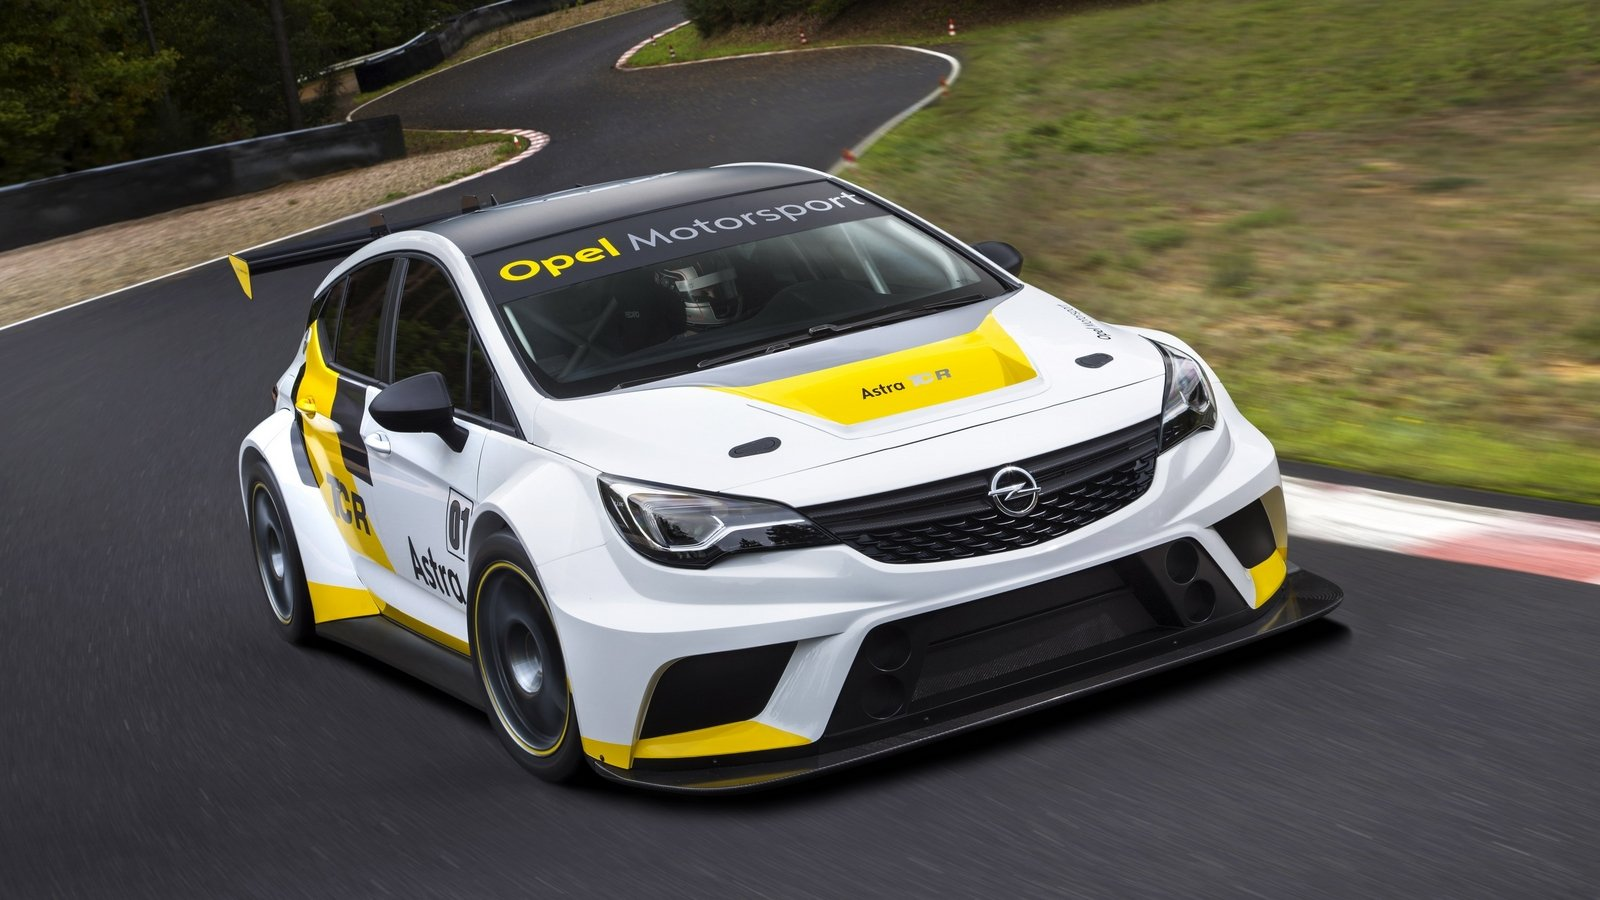 1998 2006 opel astra van truck review top speed - 2016 Opel Astra Tcr